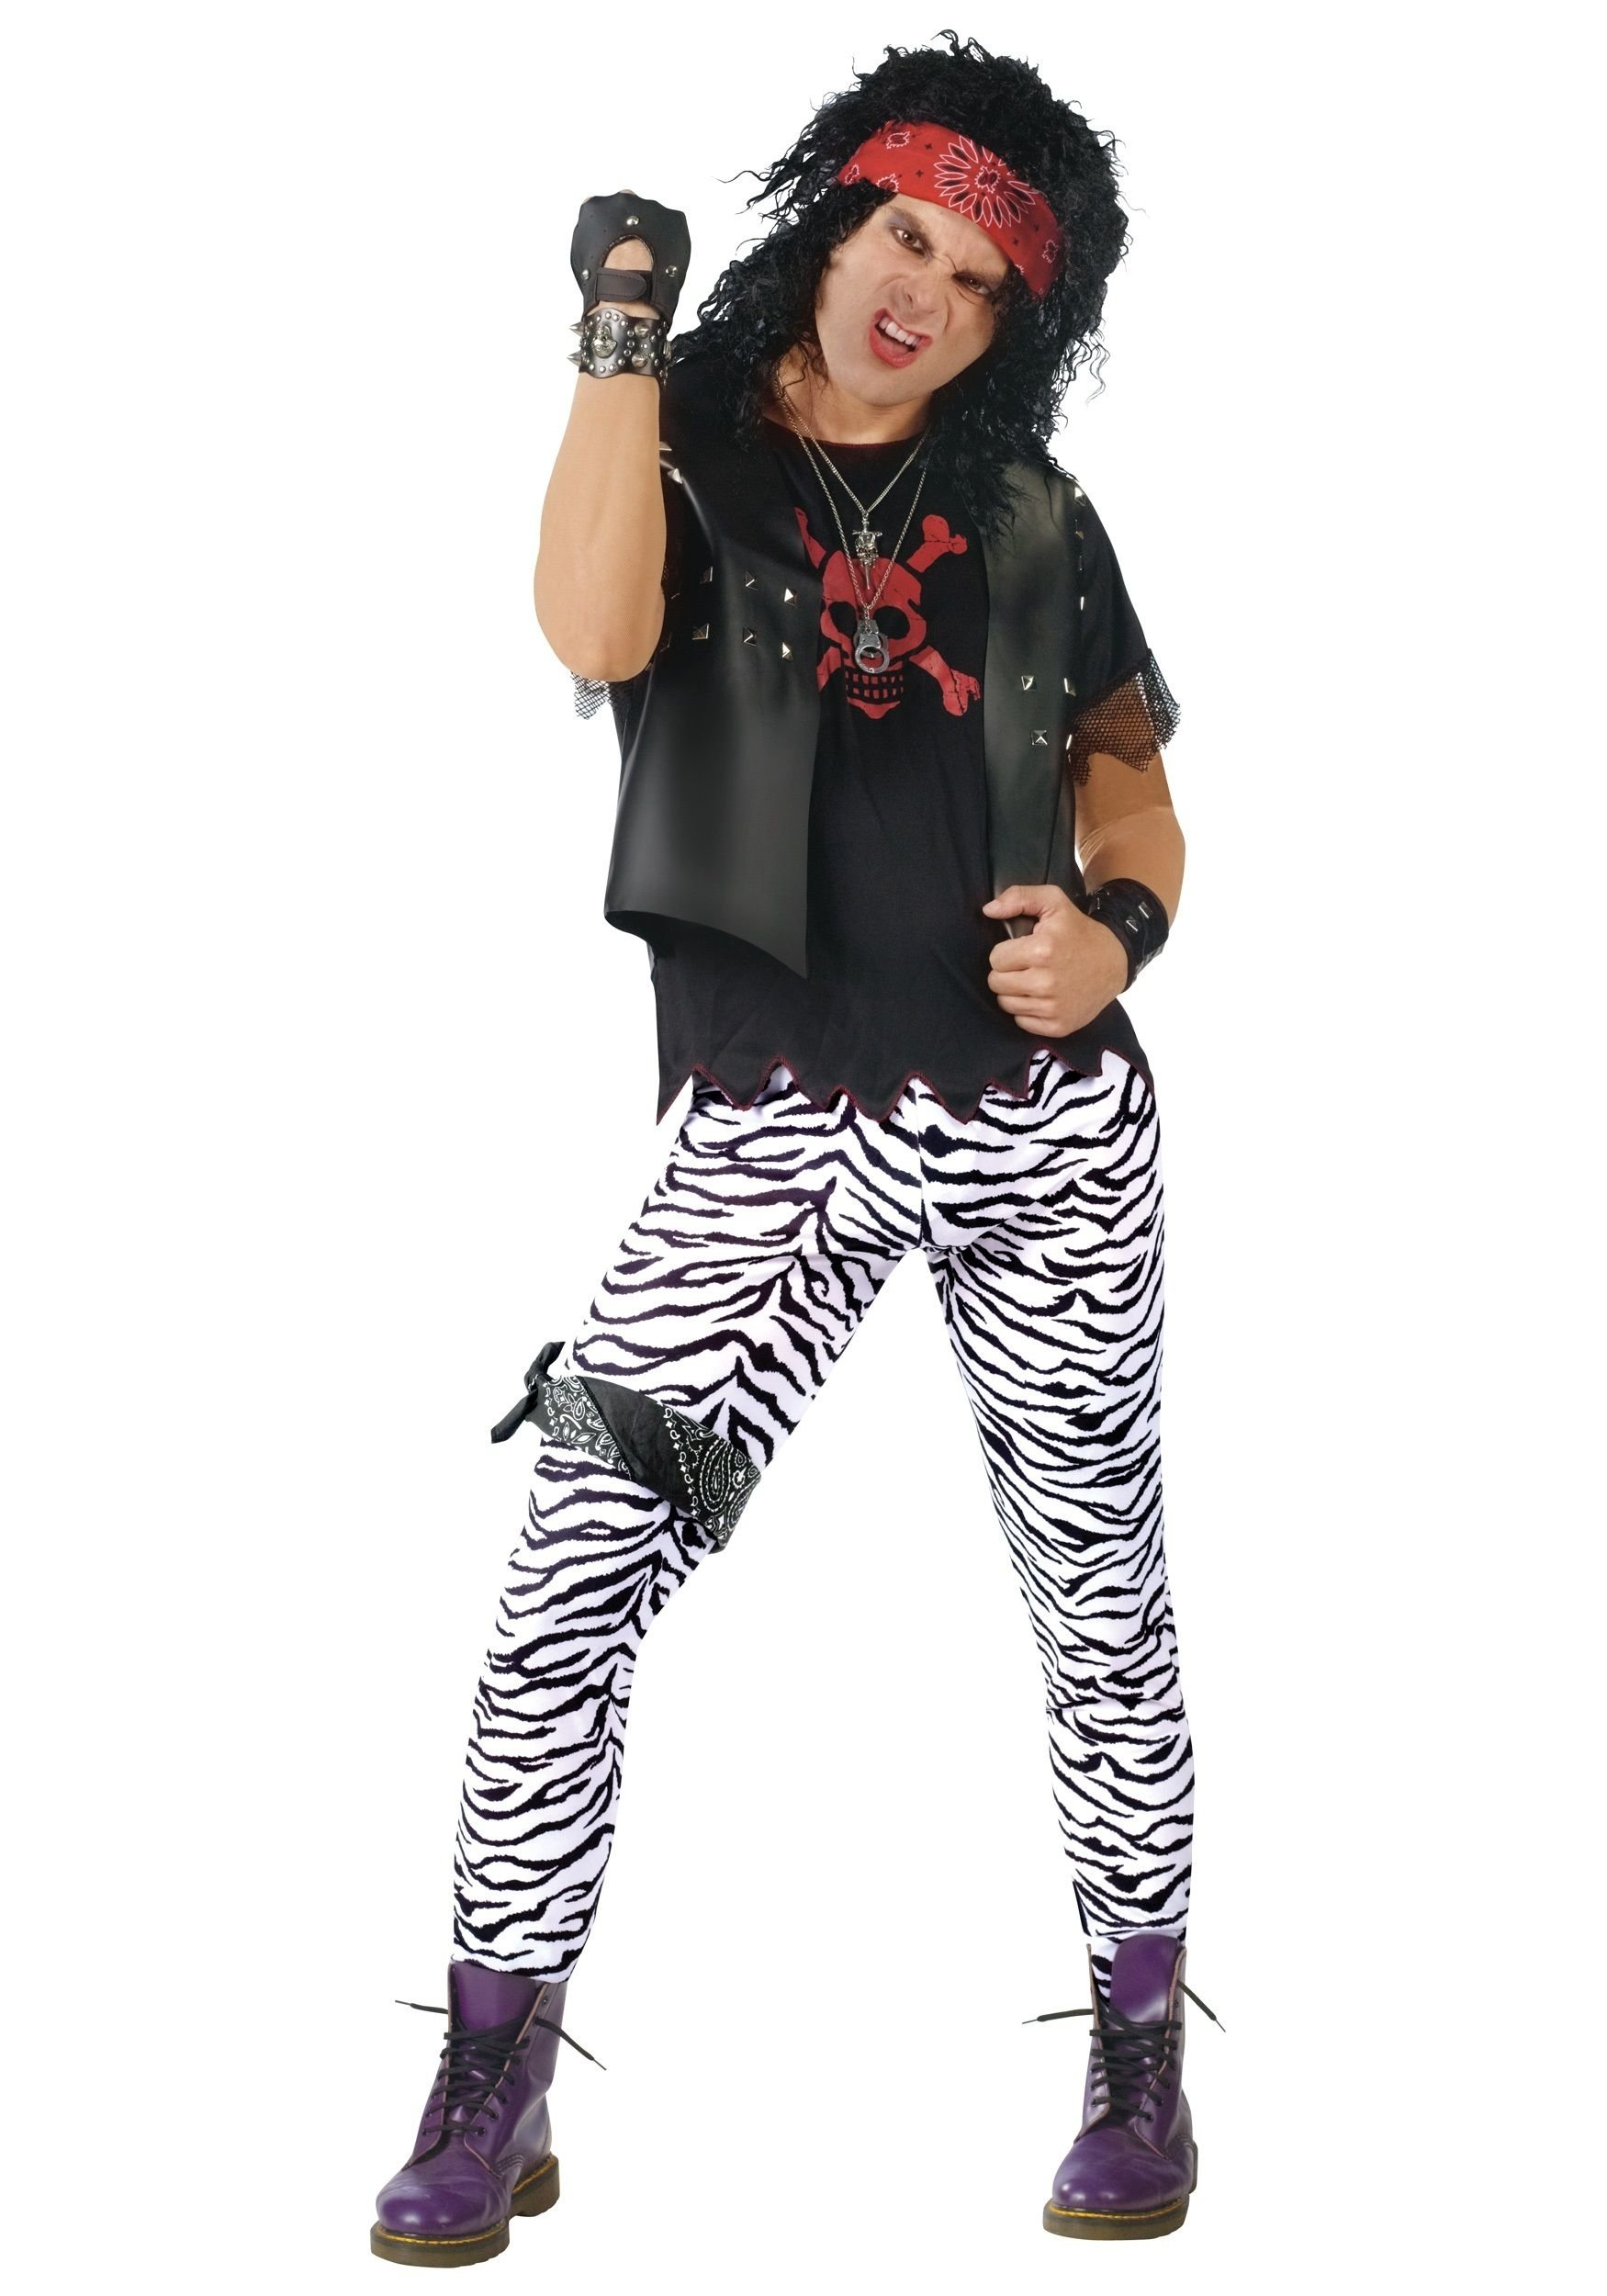 10 Pretty Rock Star Halloween Costume Ideas rockstar outfits google search rockband pinterest costumes 2021